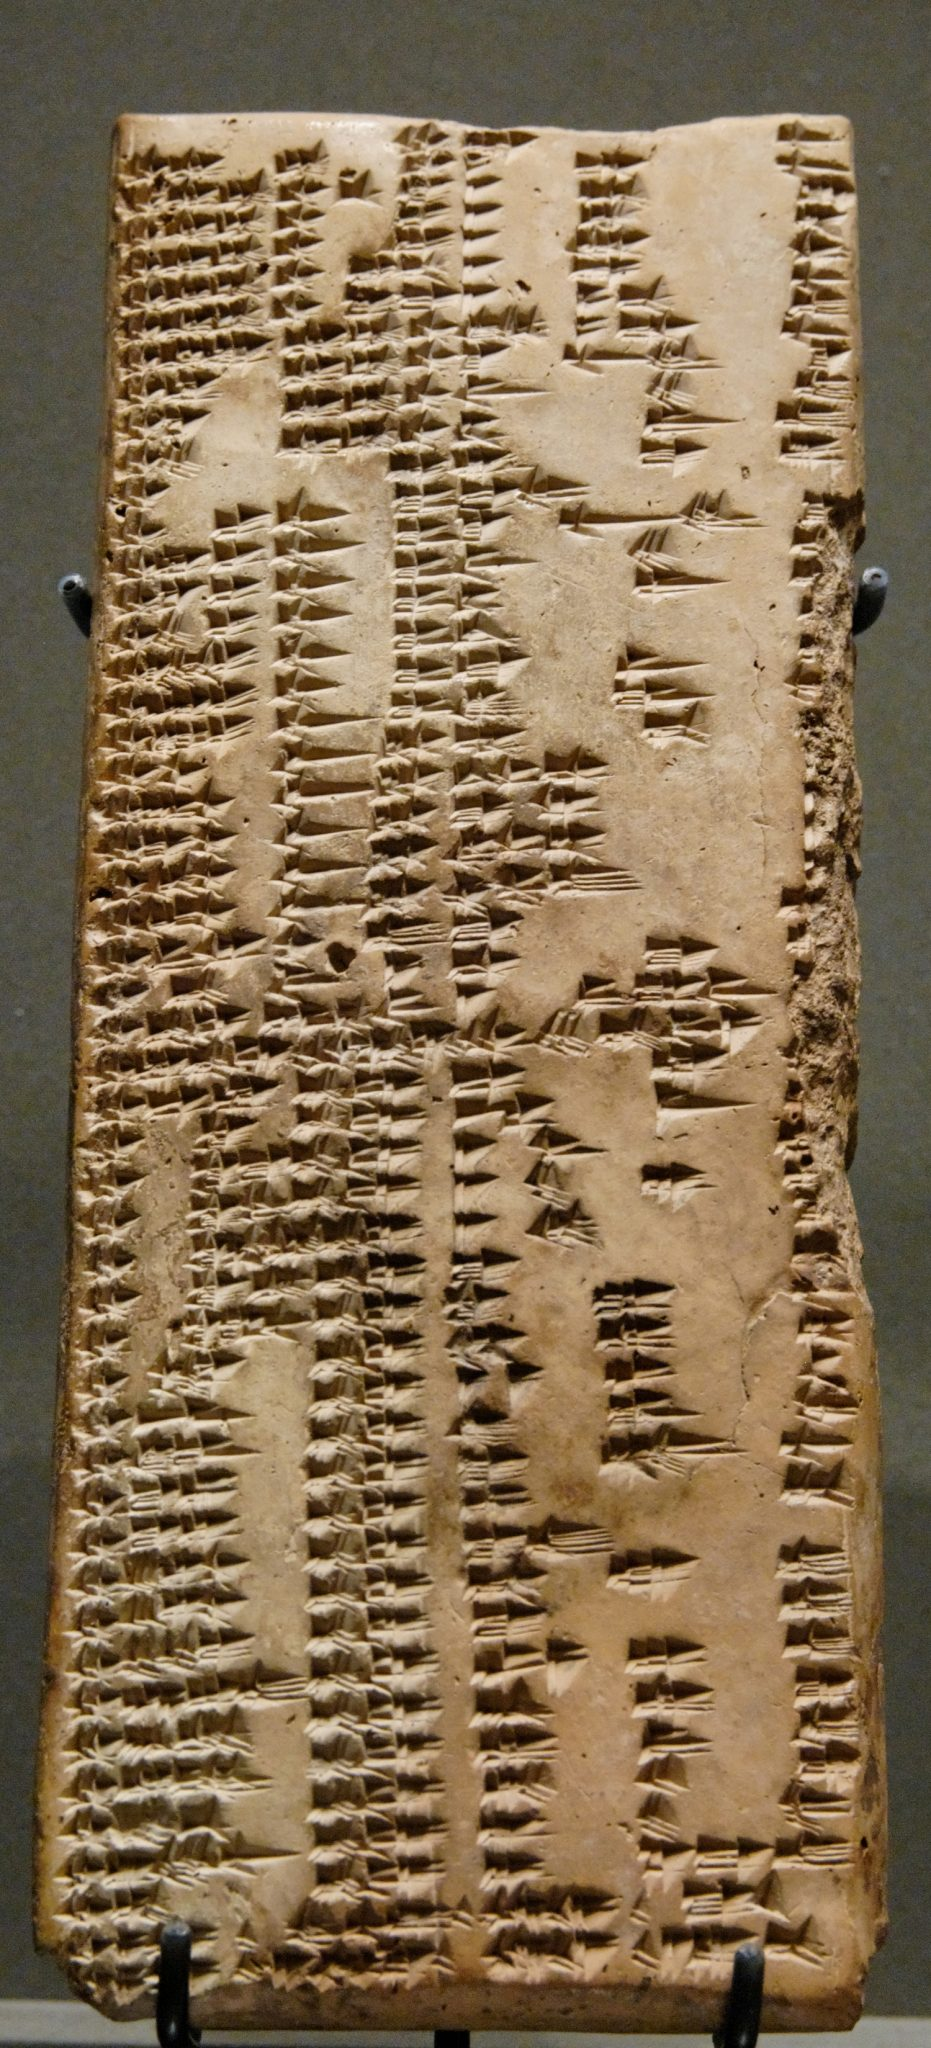 Clay tablet is in the Louvre